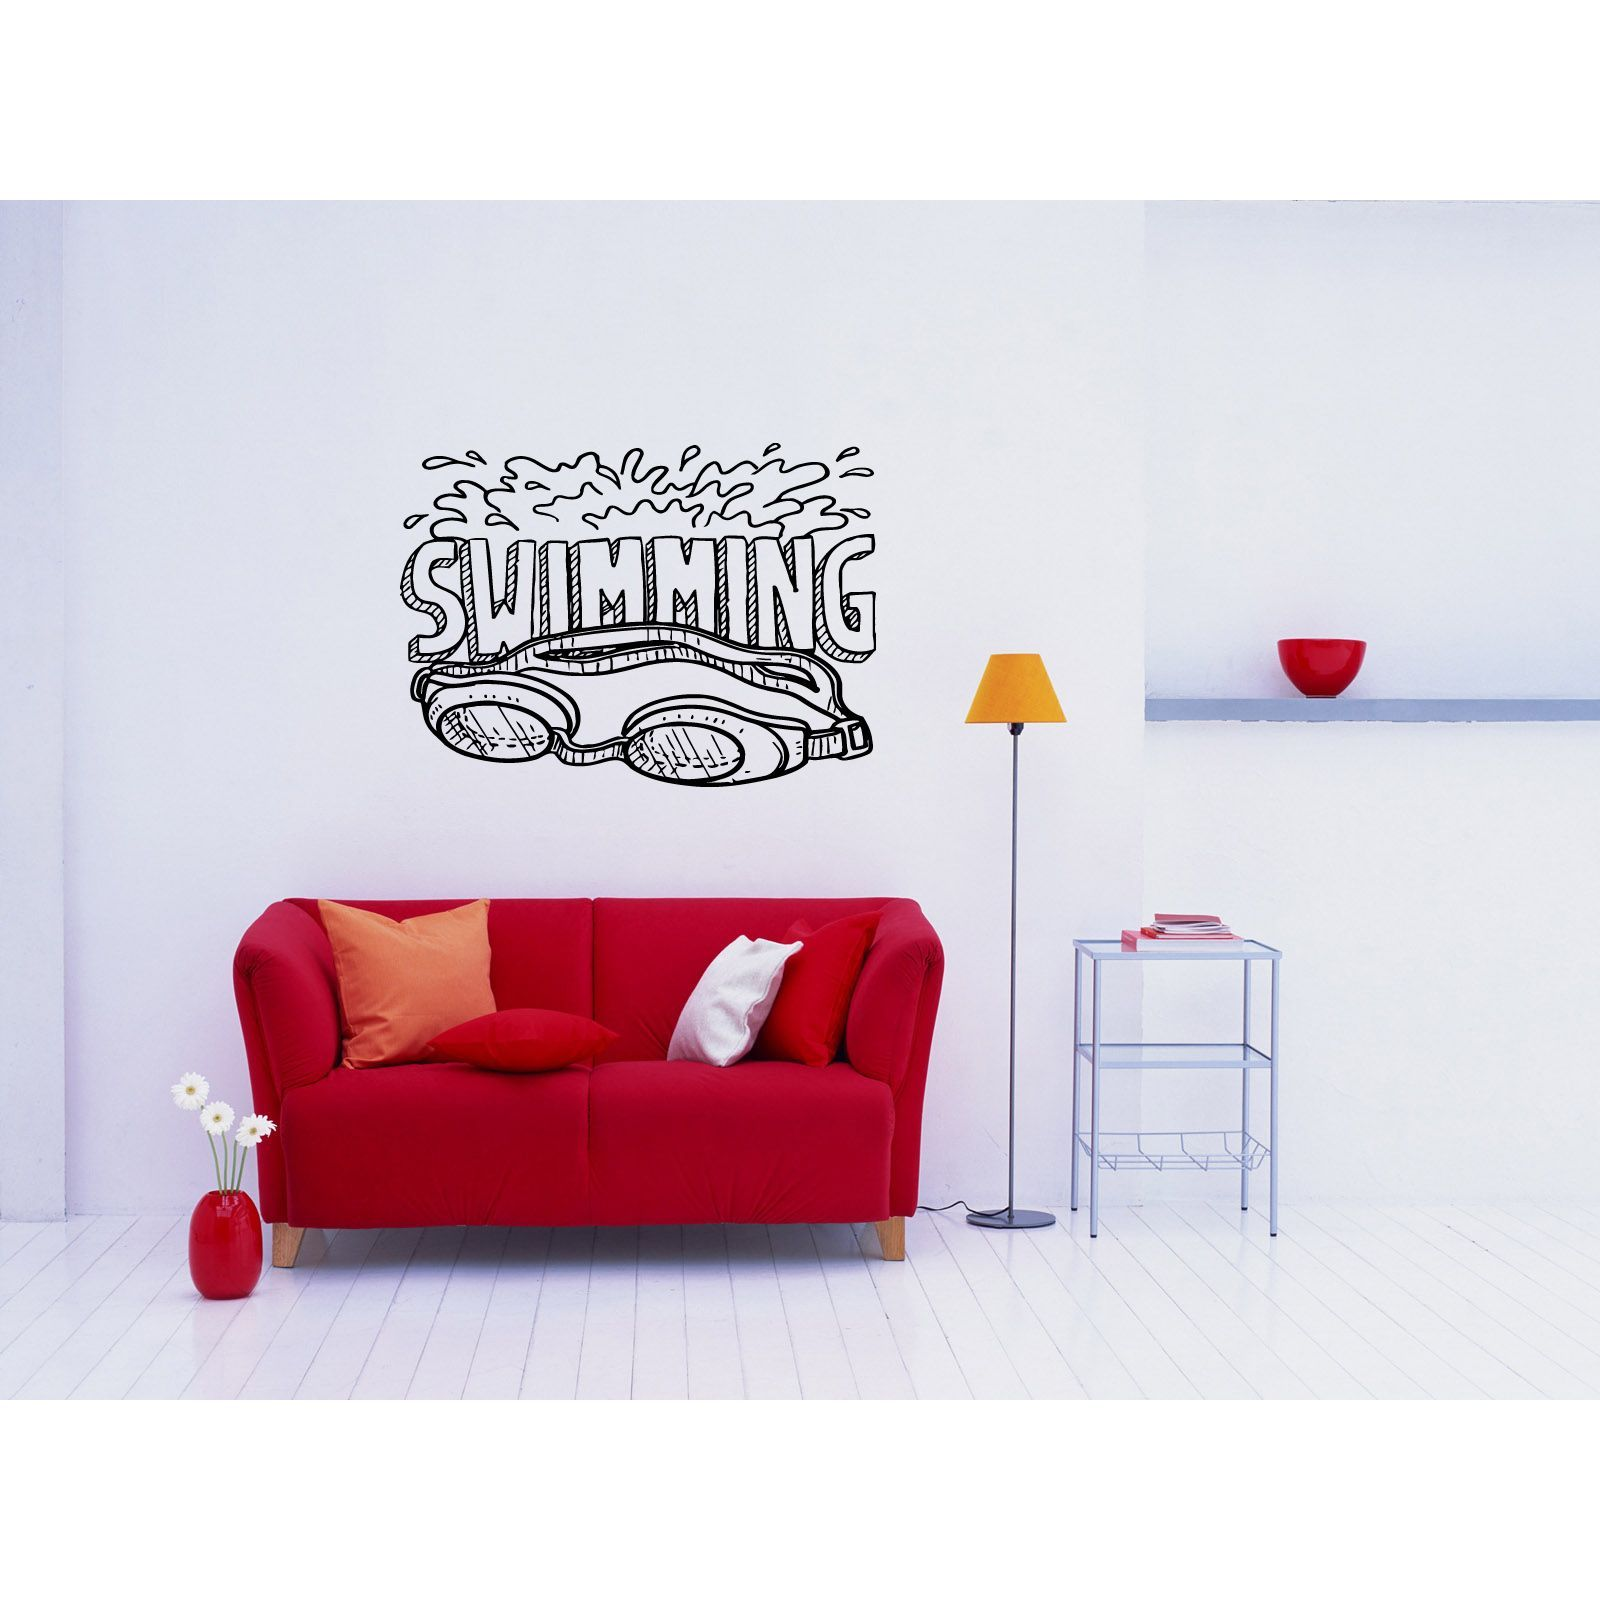 Affordable Wall Art Prepossessing Decorate Your Home With This Beautiful And Affordable Vinyl Decal Design Decoration